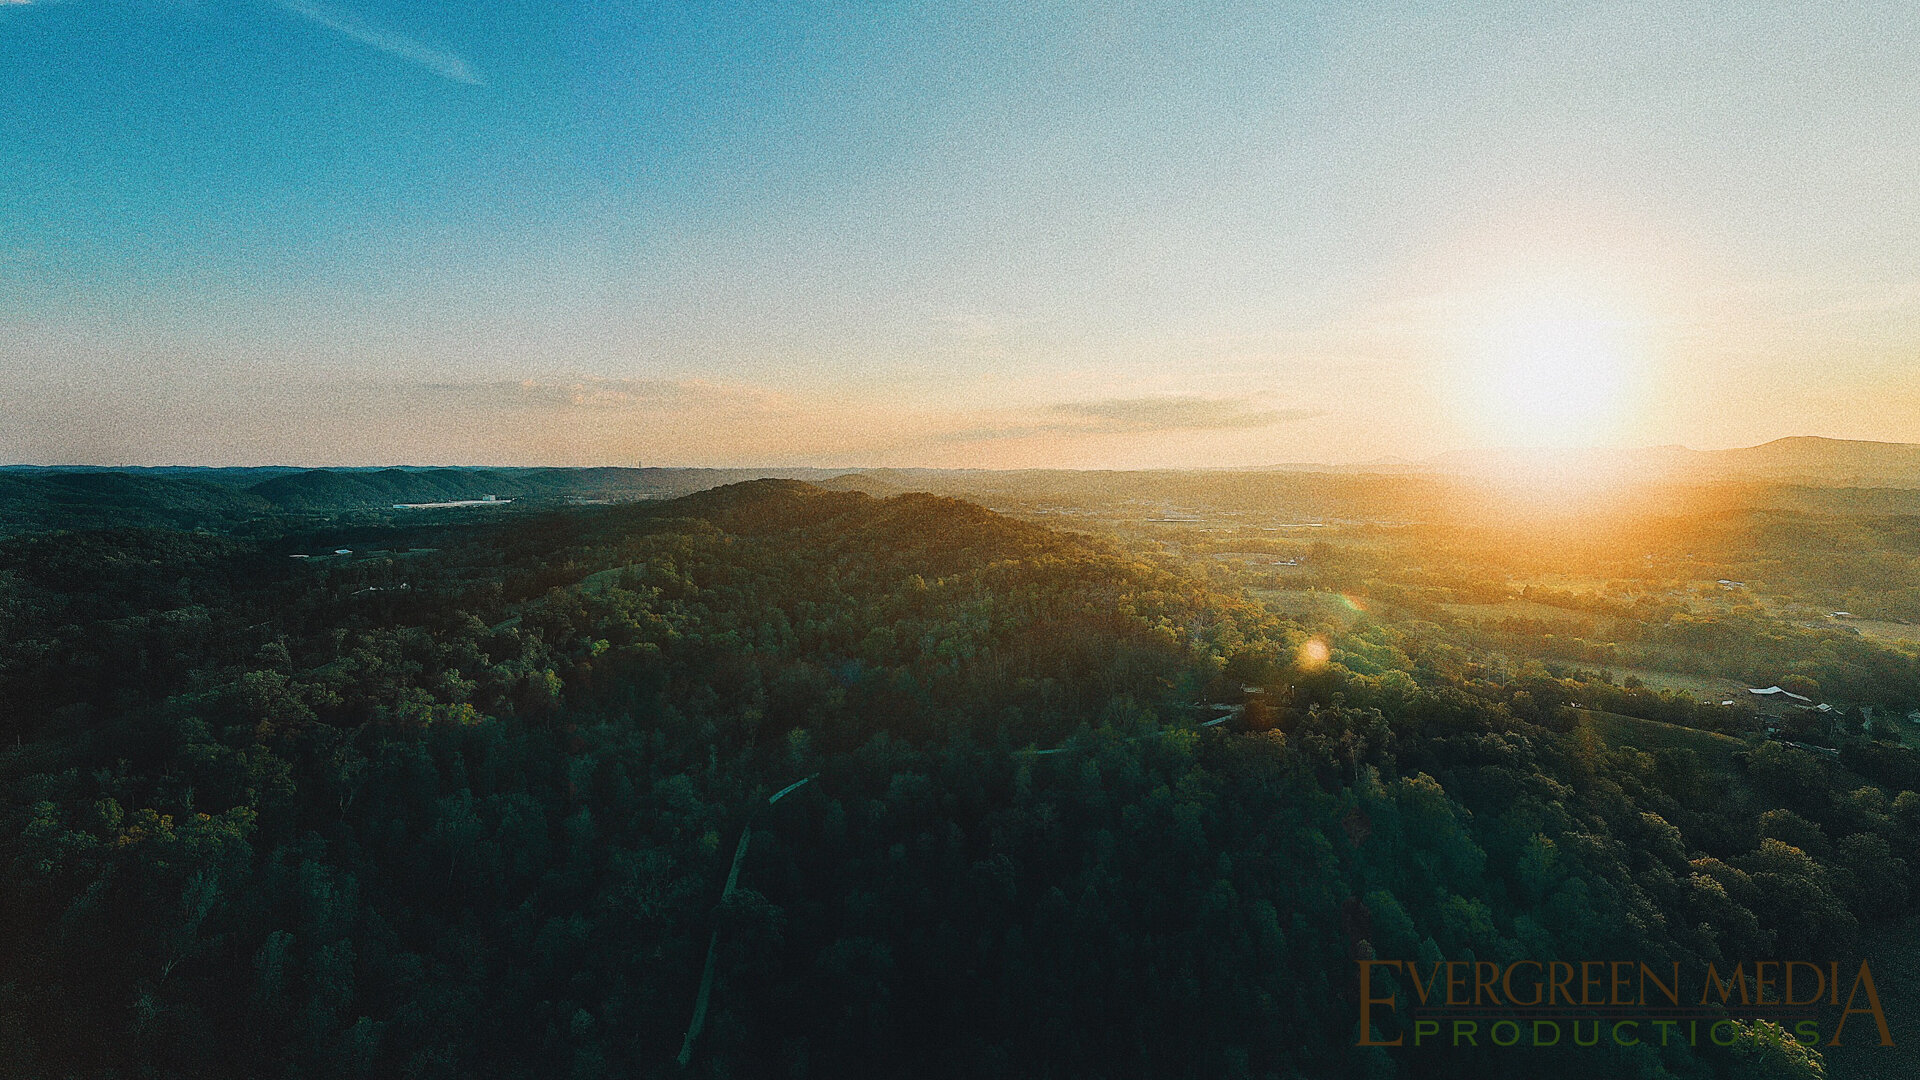 Evergreen Media Productions - Drone Photography-1.jpg